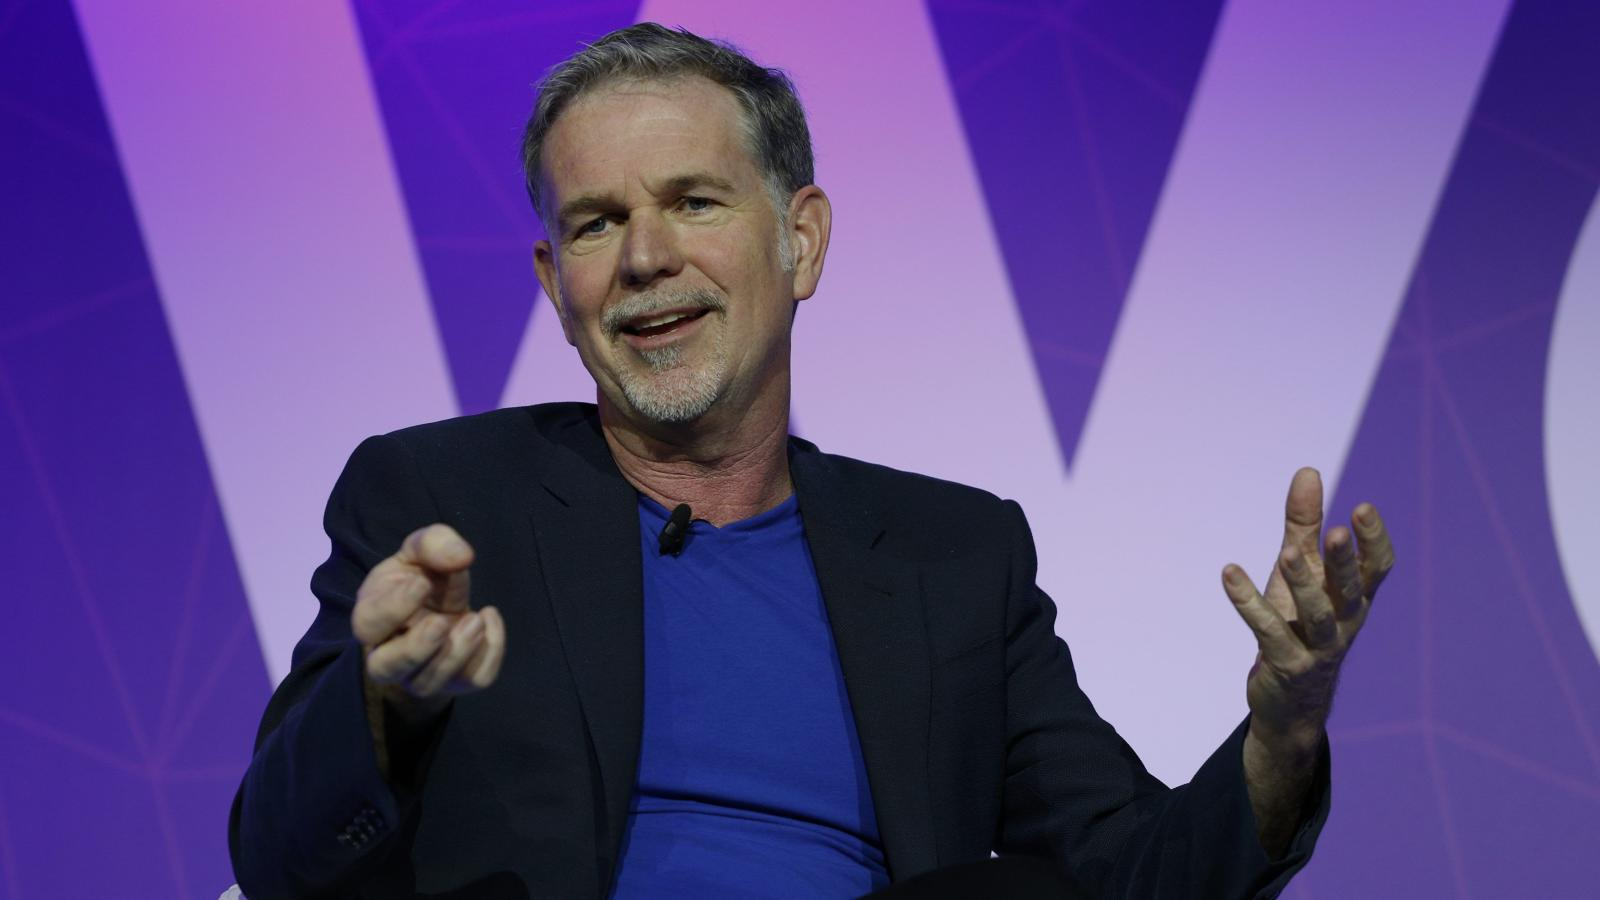 Netflix was founded 20 years ago today because Reed Hastings